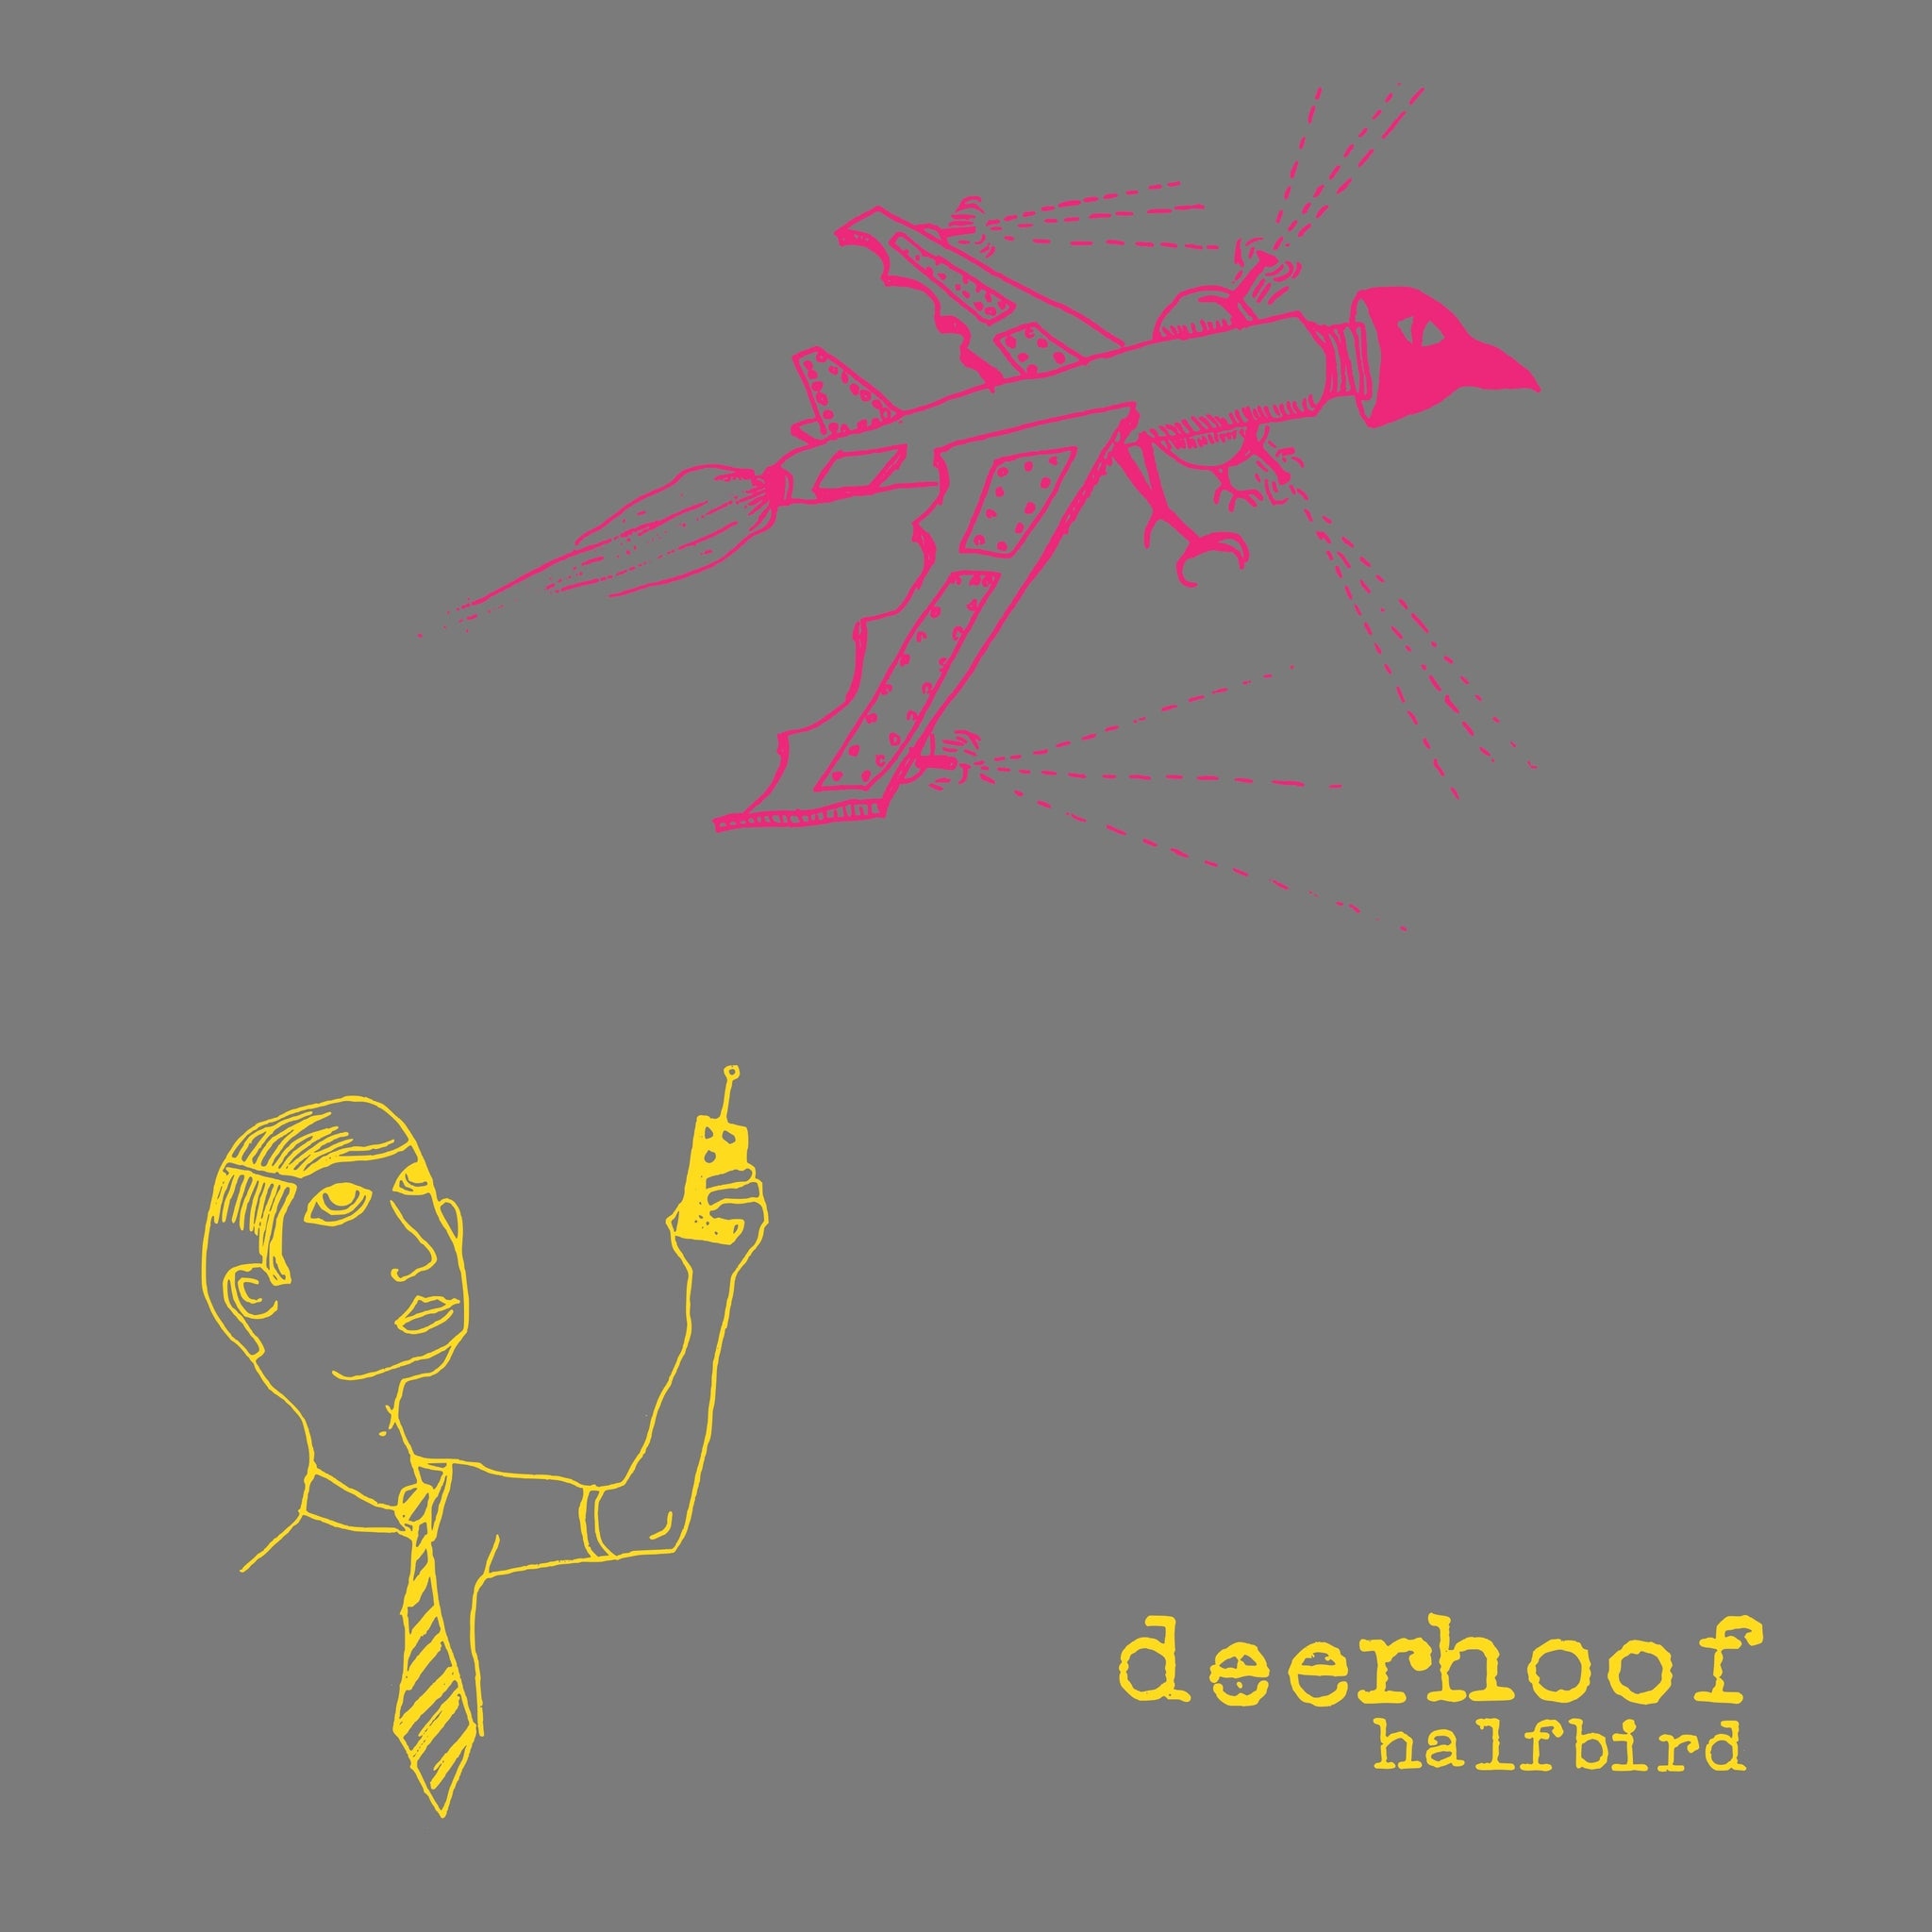 Deerhoof - Halfbird (2001) - New LP Record 2019 Joyful Noise USA Pink & Yellow Split Vinyl - Art Rock / Experimental